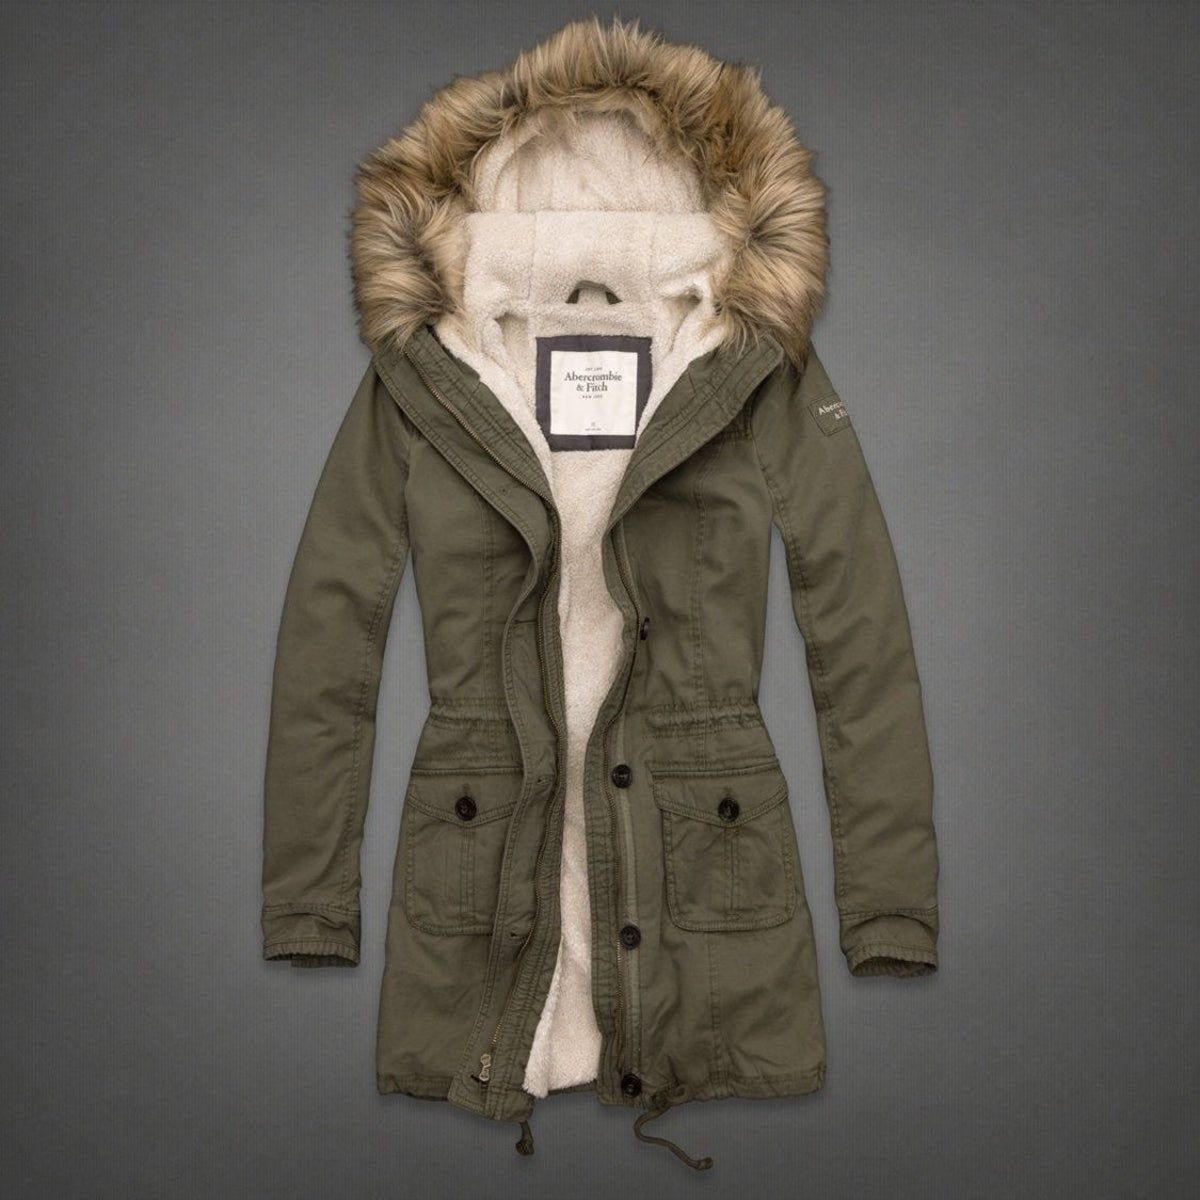 Abercrombie And Fitch Green Jacket Abercrombie And Fitch Outfit Faux Fur Hoodie Parka [ 1200 x 1200 Pixel ]